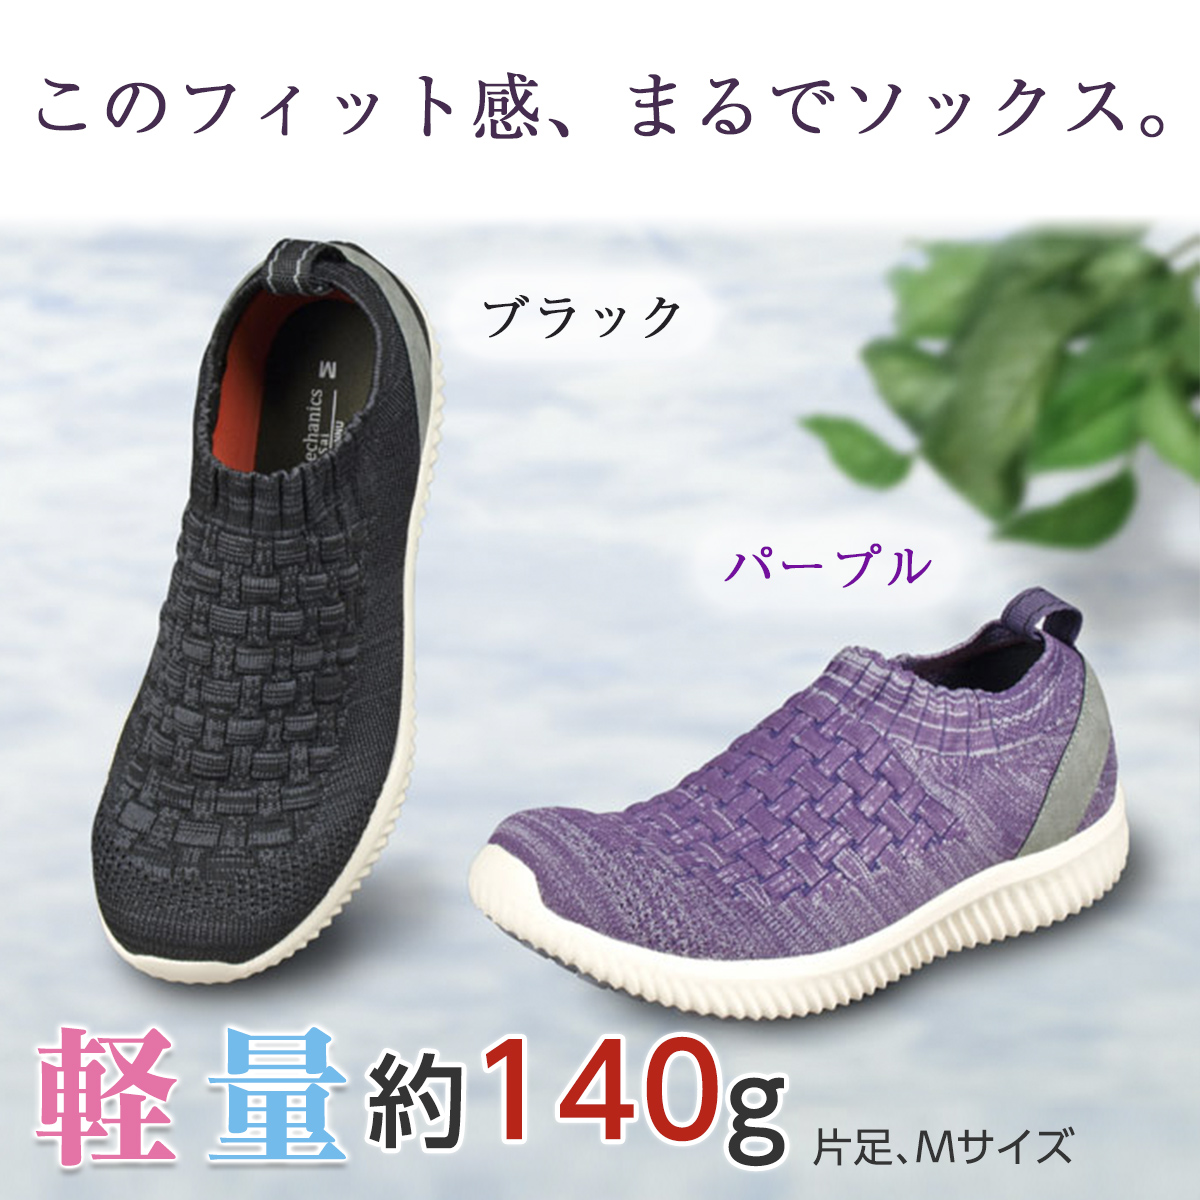 shoes_WG140